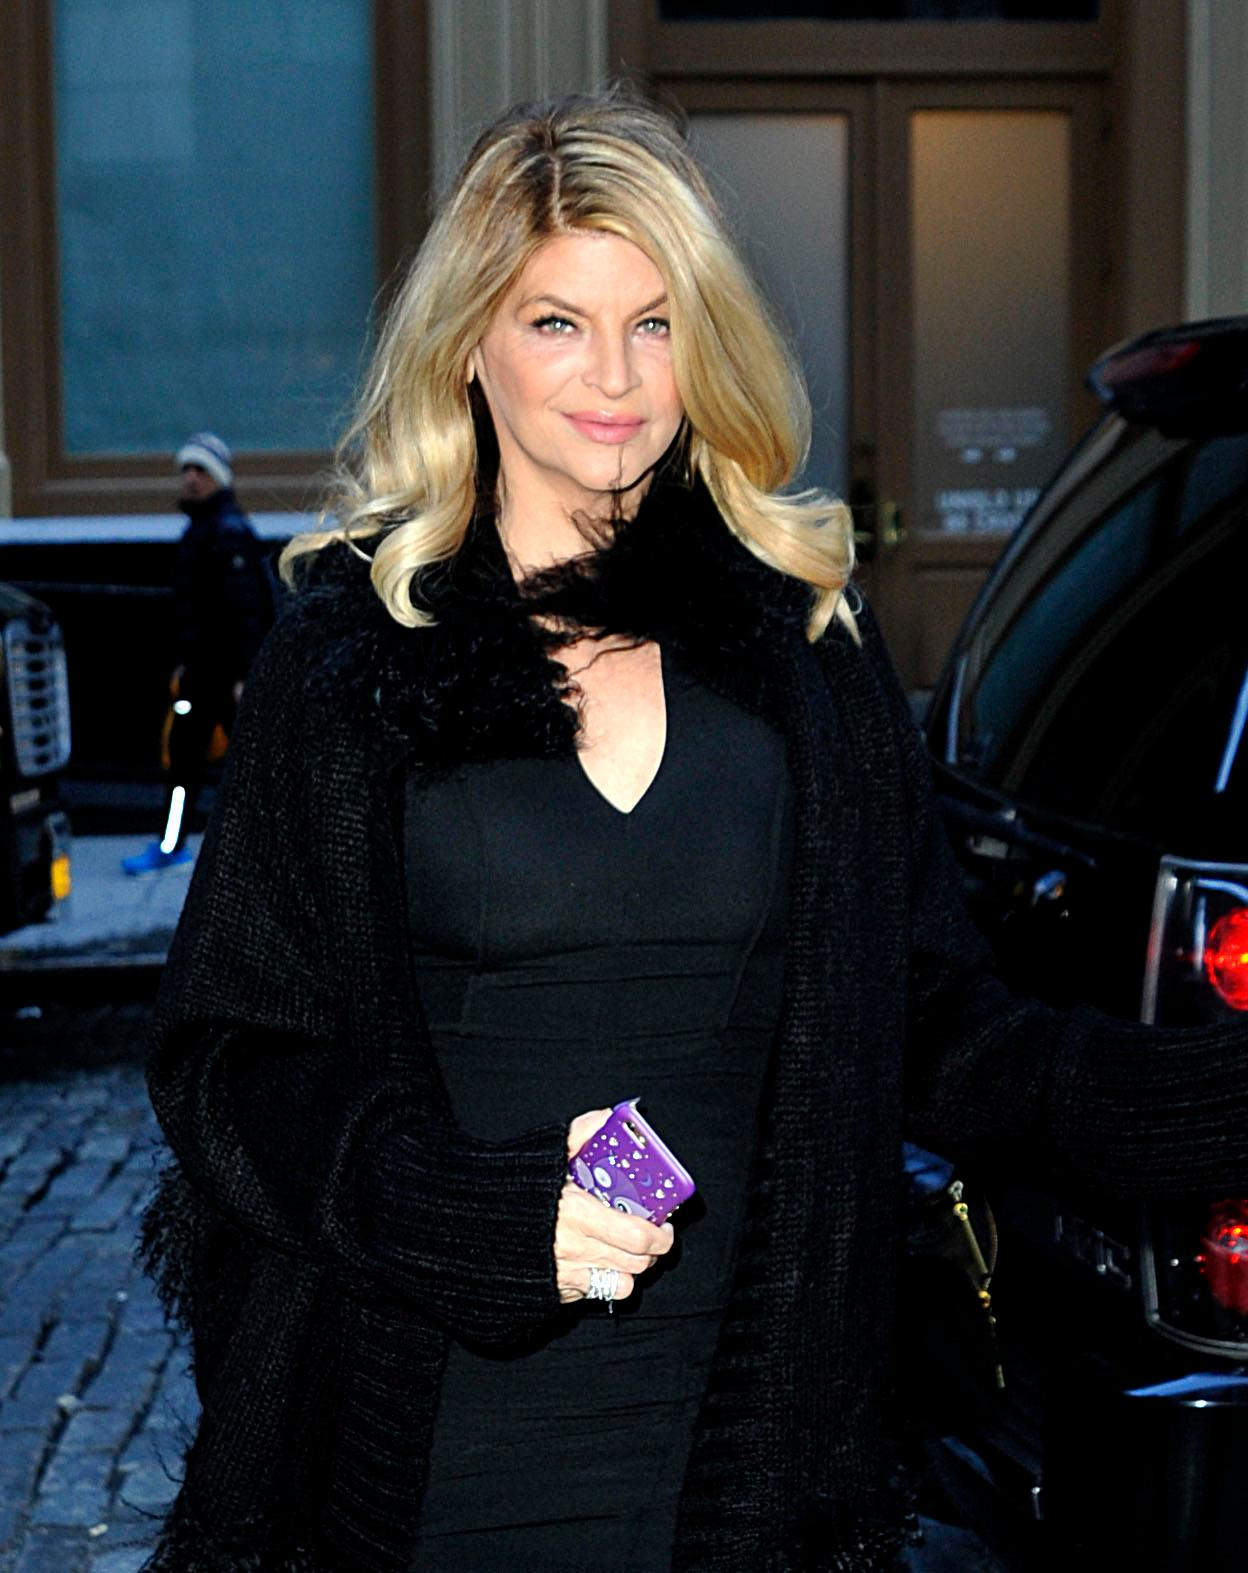 INF – Kirstie Alley spotted in NYC